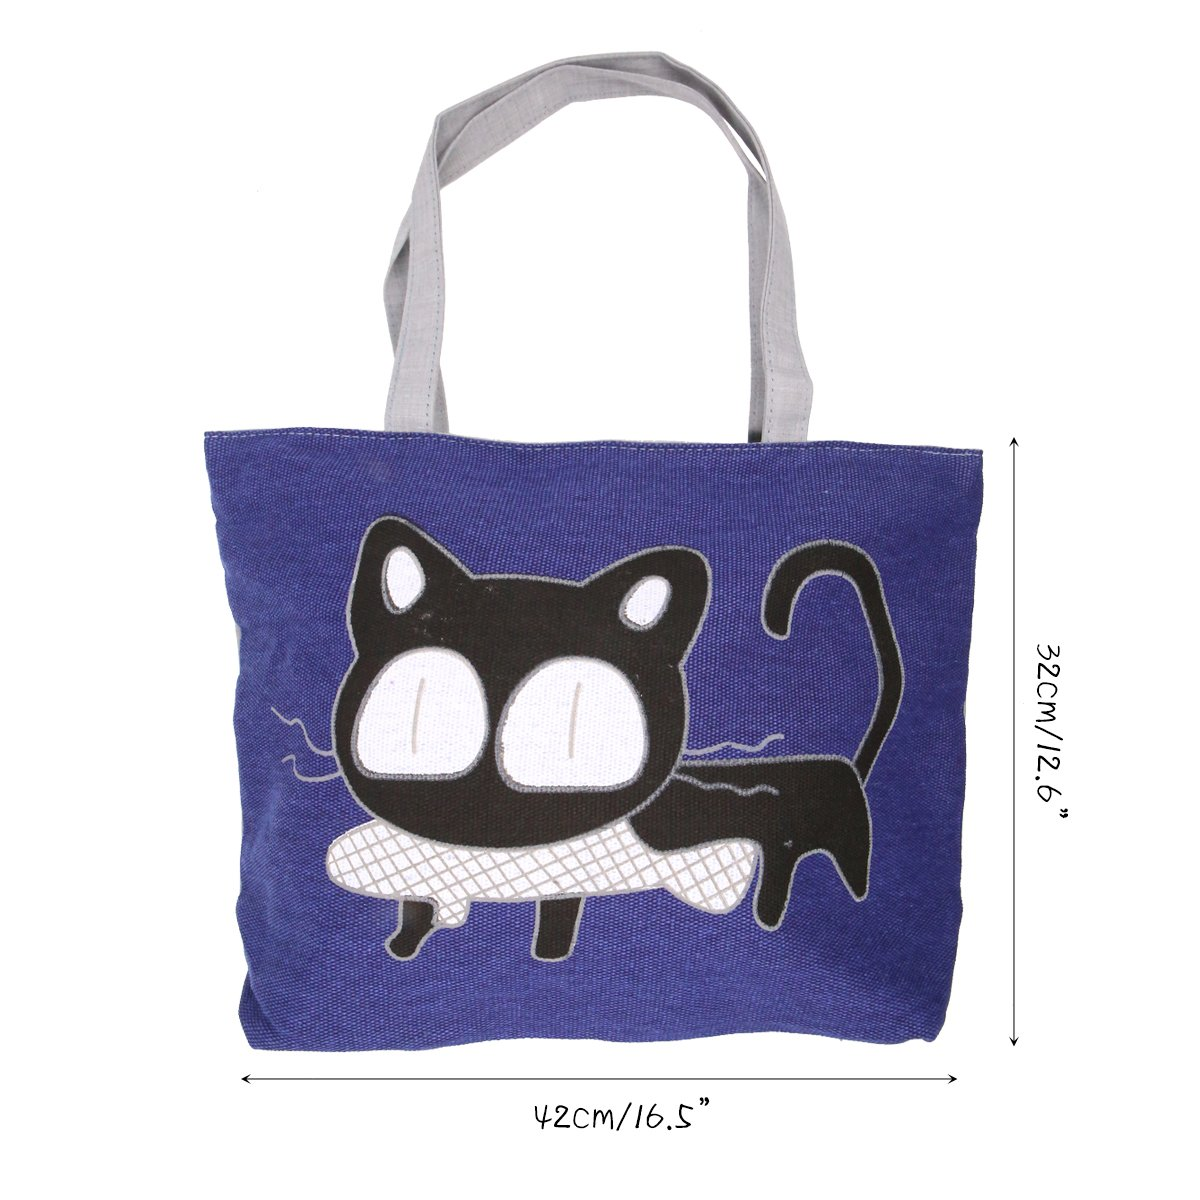 01443ff046ae Cute Cat Handbag Large Canvas Tote Bag Reusable Grocery Beach Bag Shopping  Bag With Zipper For Women And Girls(Blue)